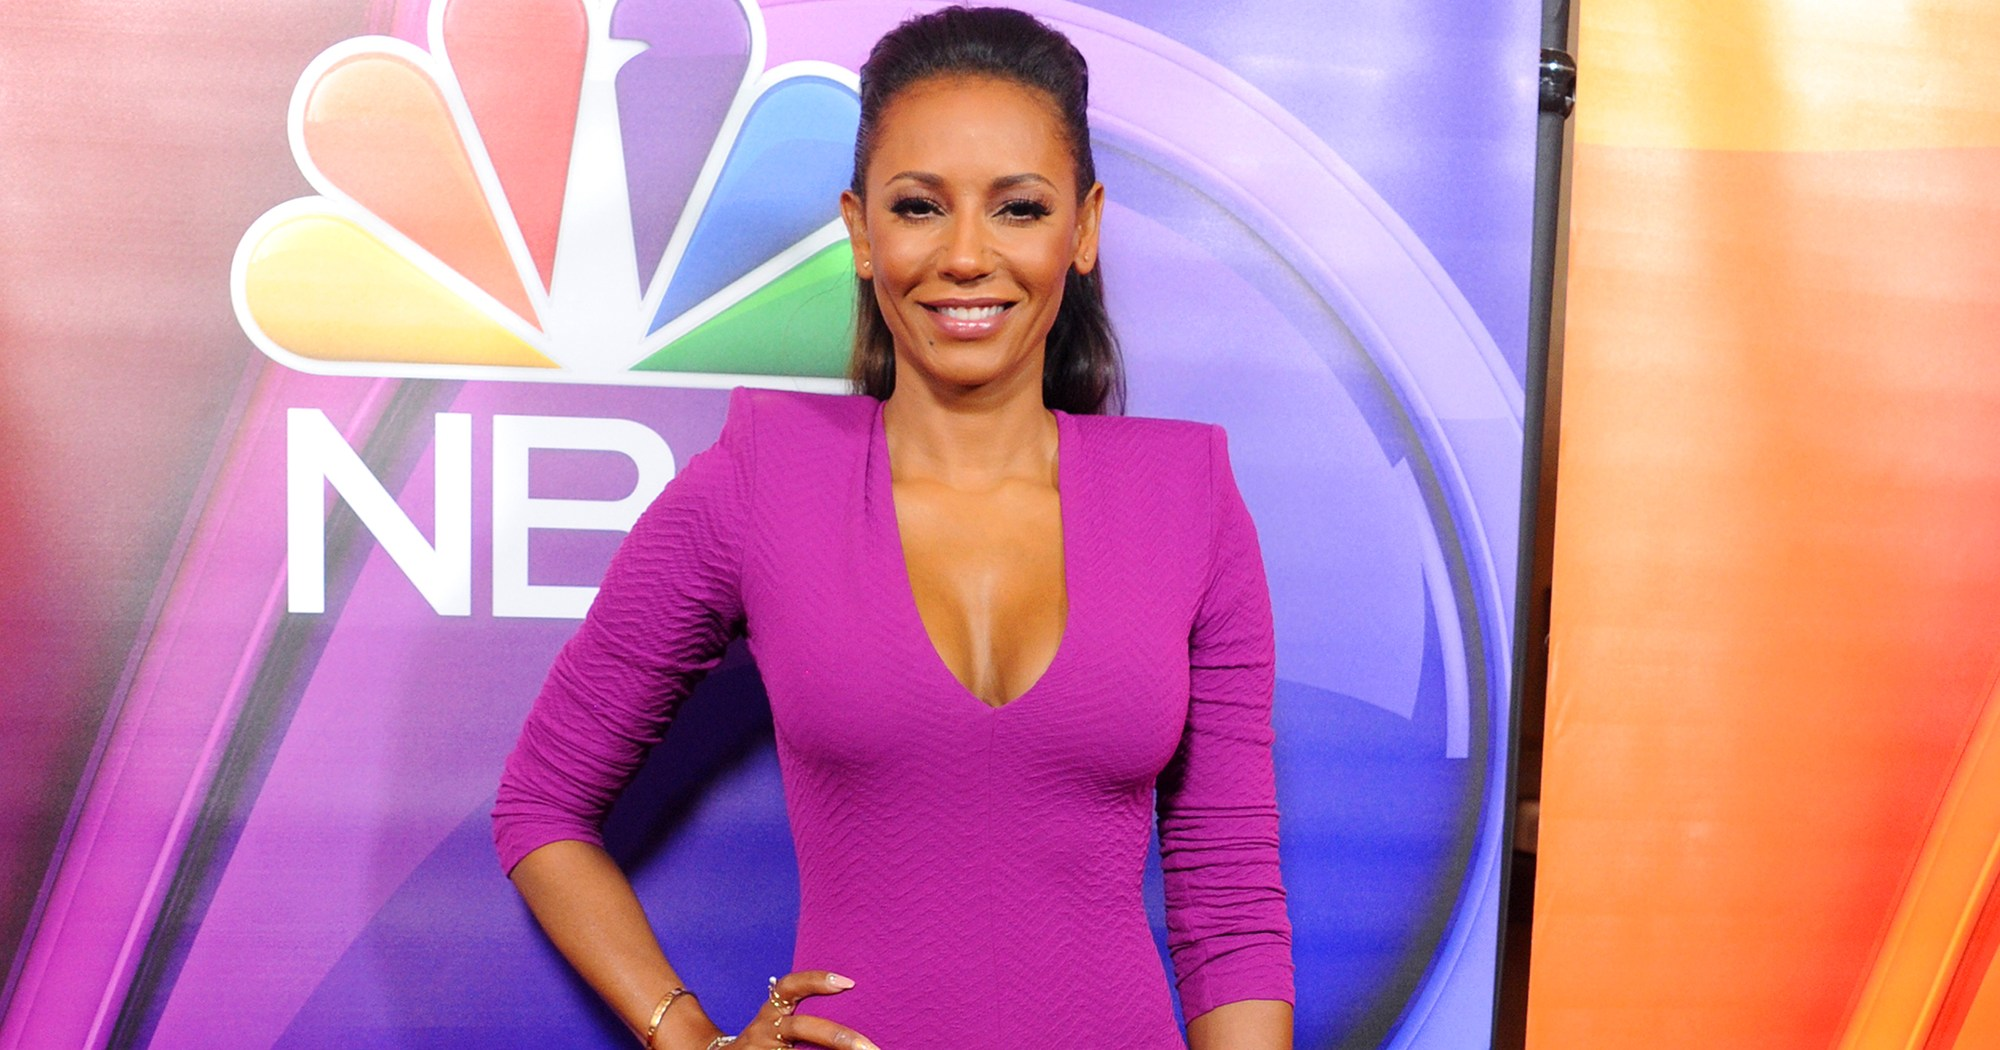 Mel B's Friend: She Is 'Fine,' Has 'Already Had Surgery' After Fall